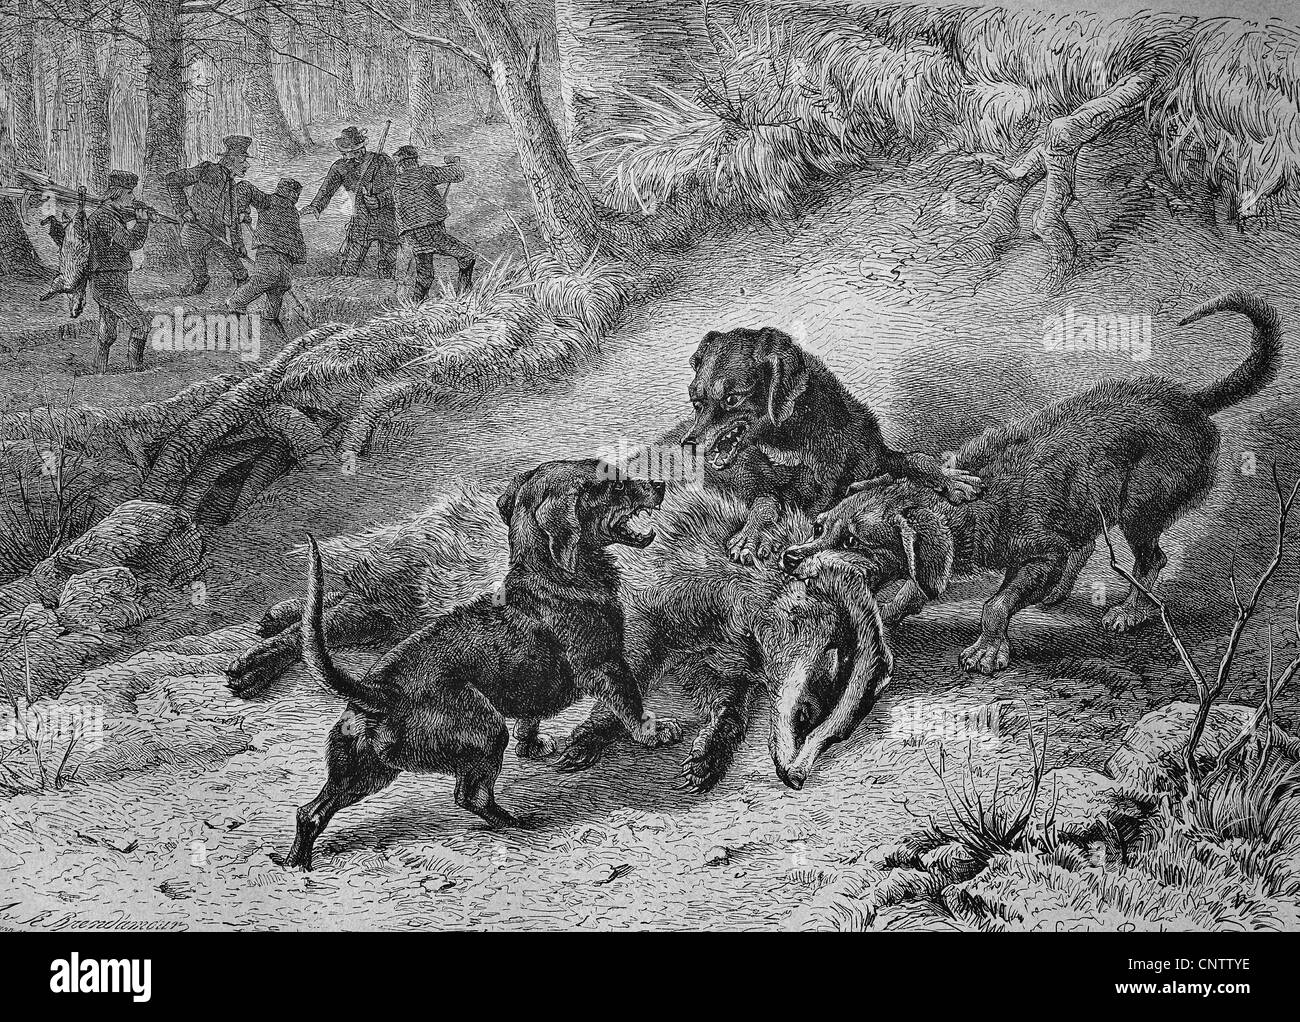 Hounds hunting badgers, historical engraving, 1869 - Stock Image